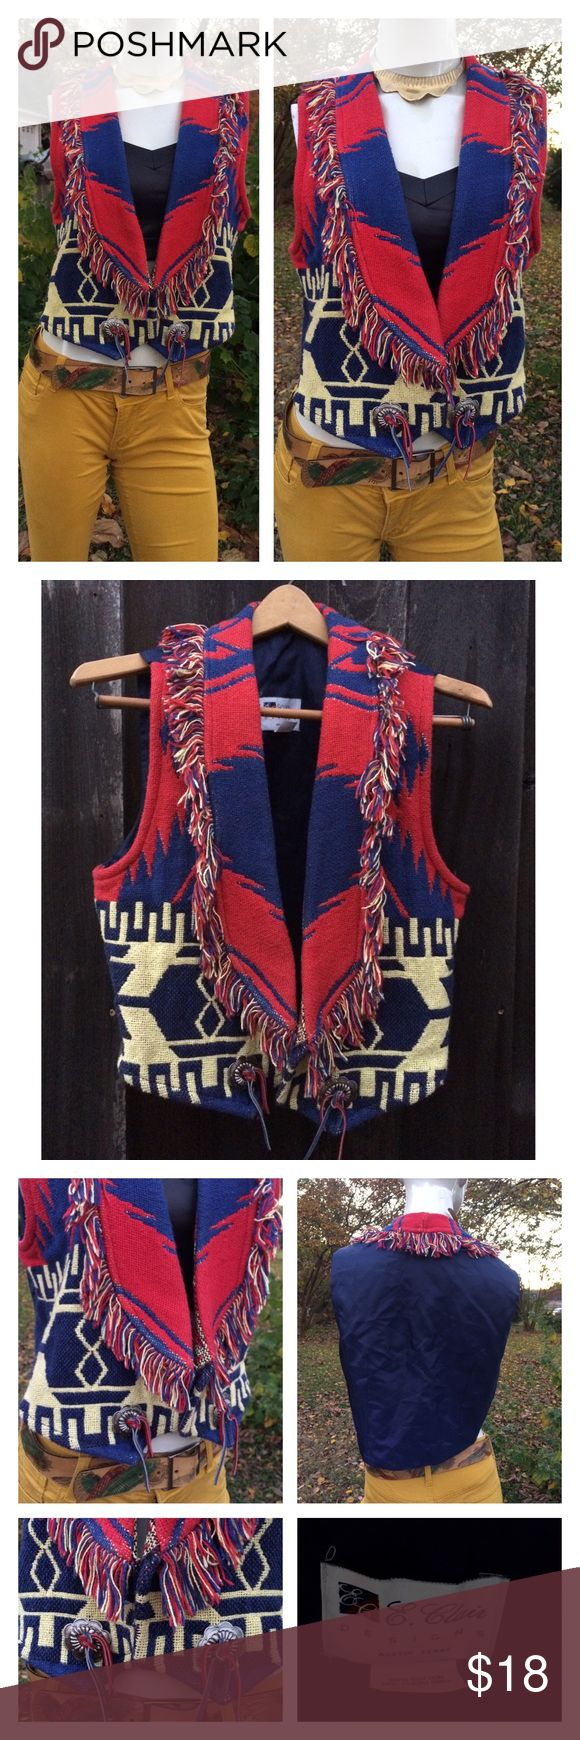 "Vtg Western Cowboy Vest One Size Fringe Tapestry fringe- western tapestry- open front vest w silver conch and leather string embellishments. Measurements are not exact layed flat un-stretched not doubled Shoulder to SHOULDER: 14""  Underarm to underarm: 19.5' Length: 20"" at longest point 18"" at shortest Smoke free home!!!! MADE IN GOOD OL AUSTIN TEXAS U.S.A Thanks!!! Vintage Tops"